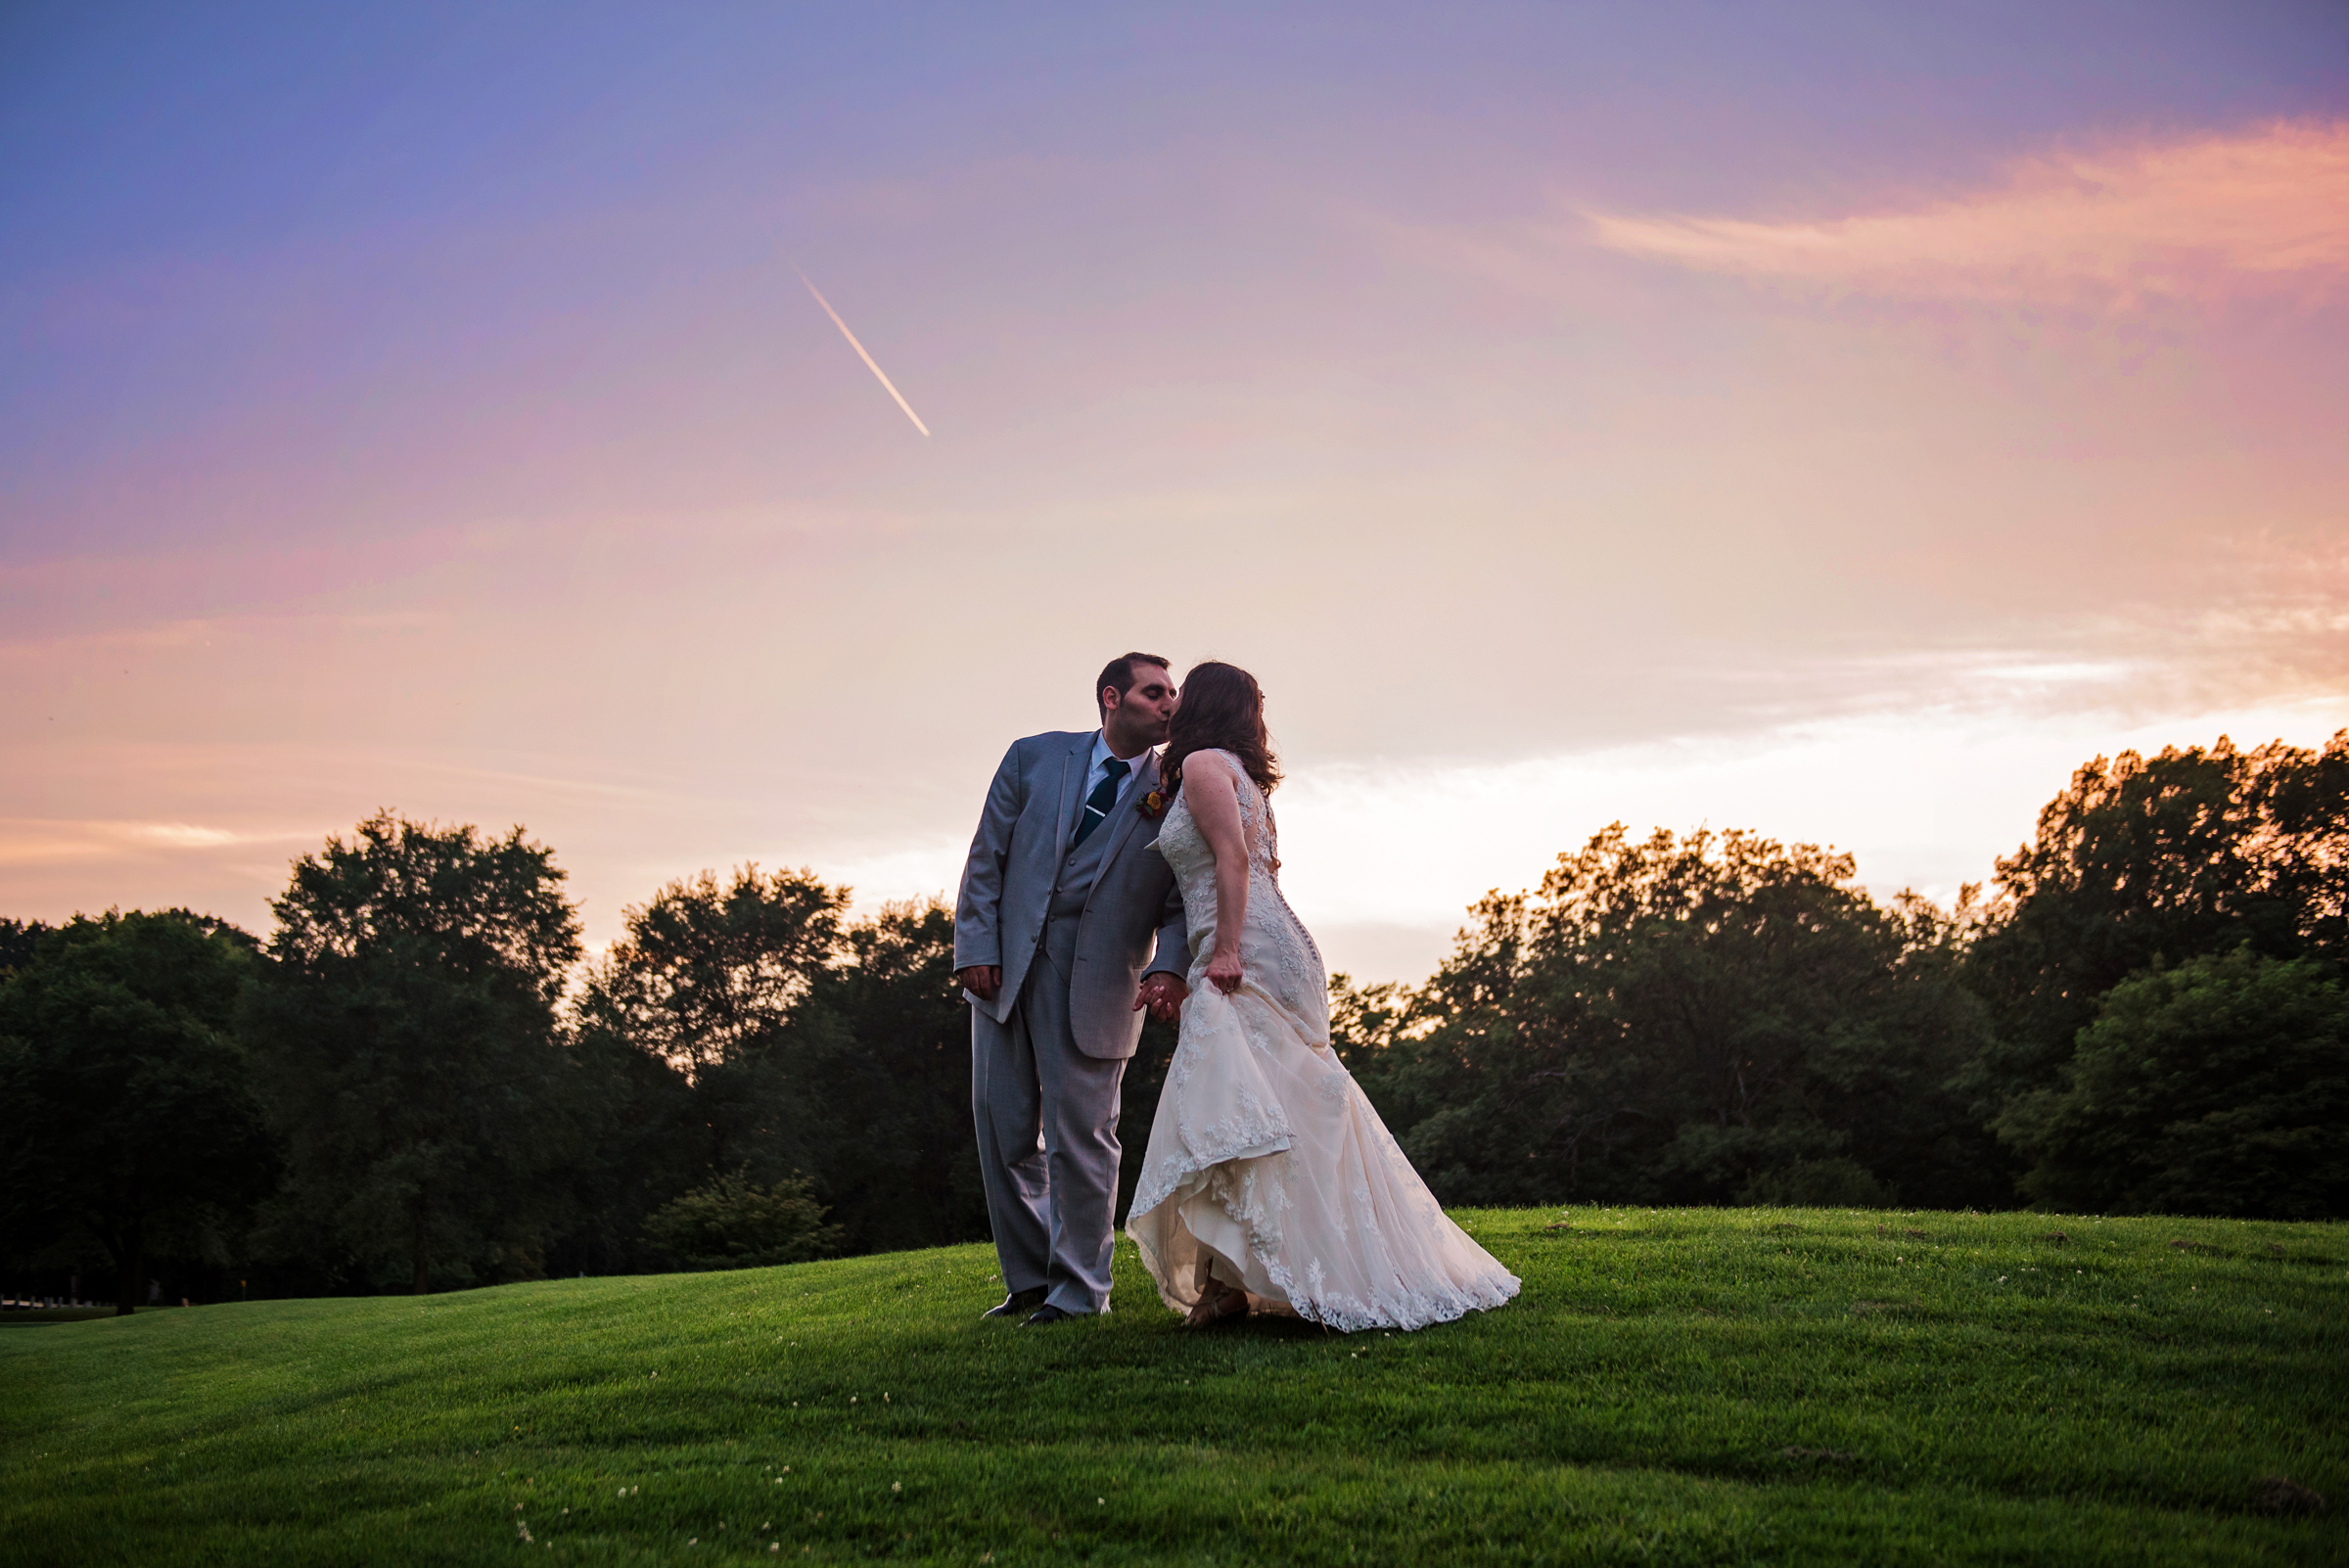 JILL_STUDIO_Wedding_JILL_STUDIO_Rochester_NY_Photographer_20-DSC_2017.jpg